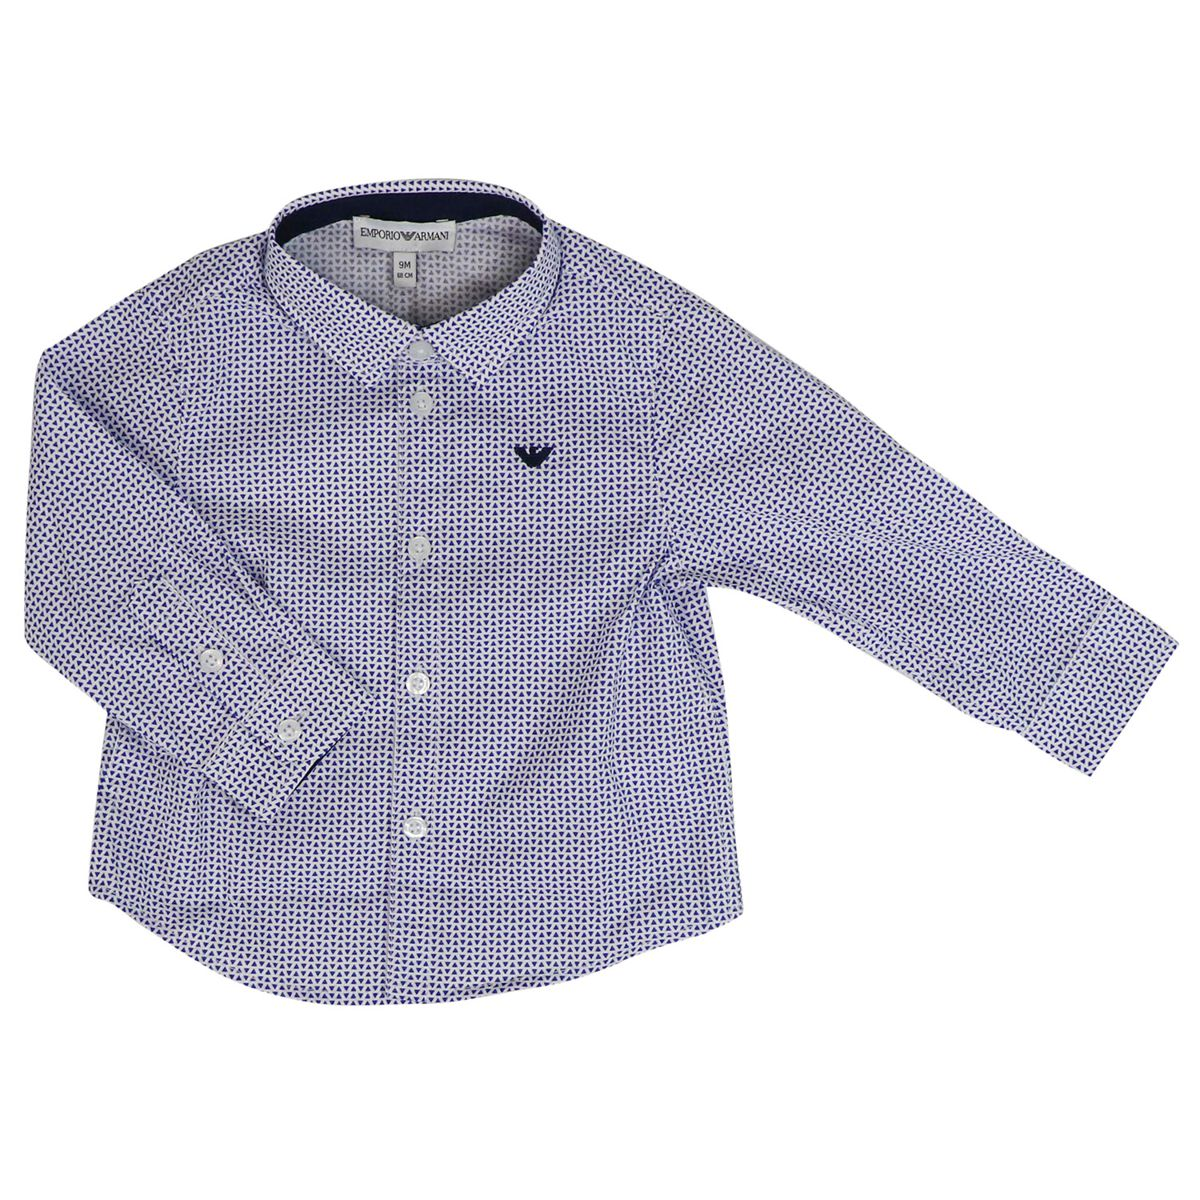 Micro-patterned shirt with logo Fancy white Emporio Armani